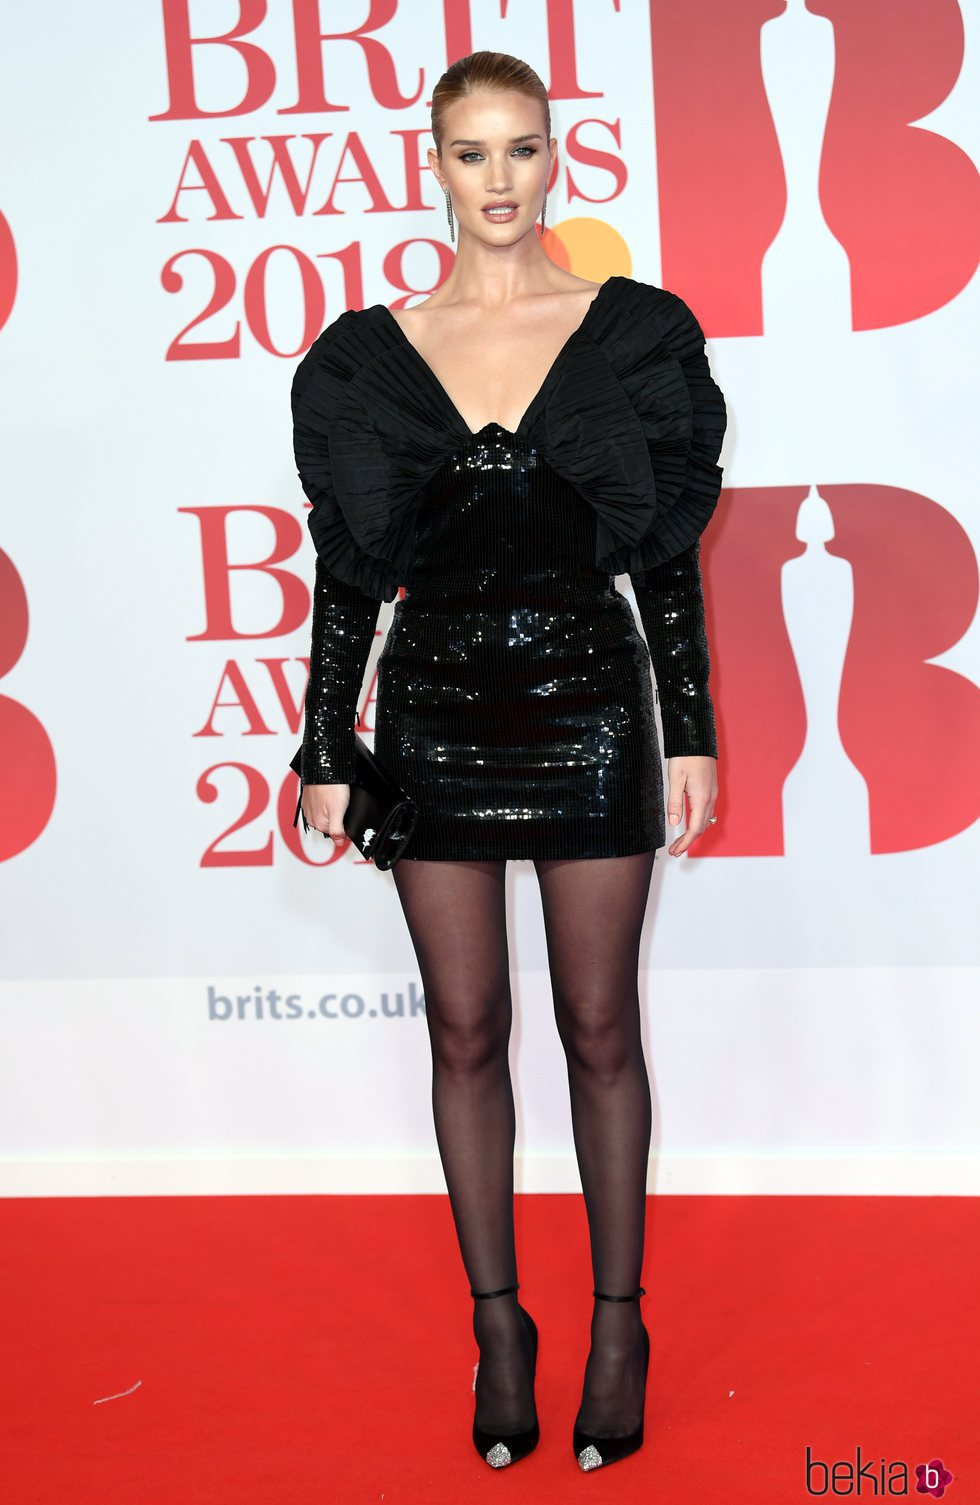 Rosie Huntington-Whiteley en la alfombra roja de los Brit Awards 2018